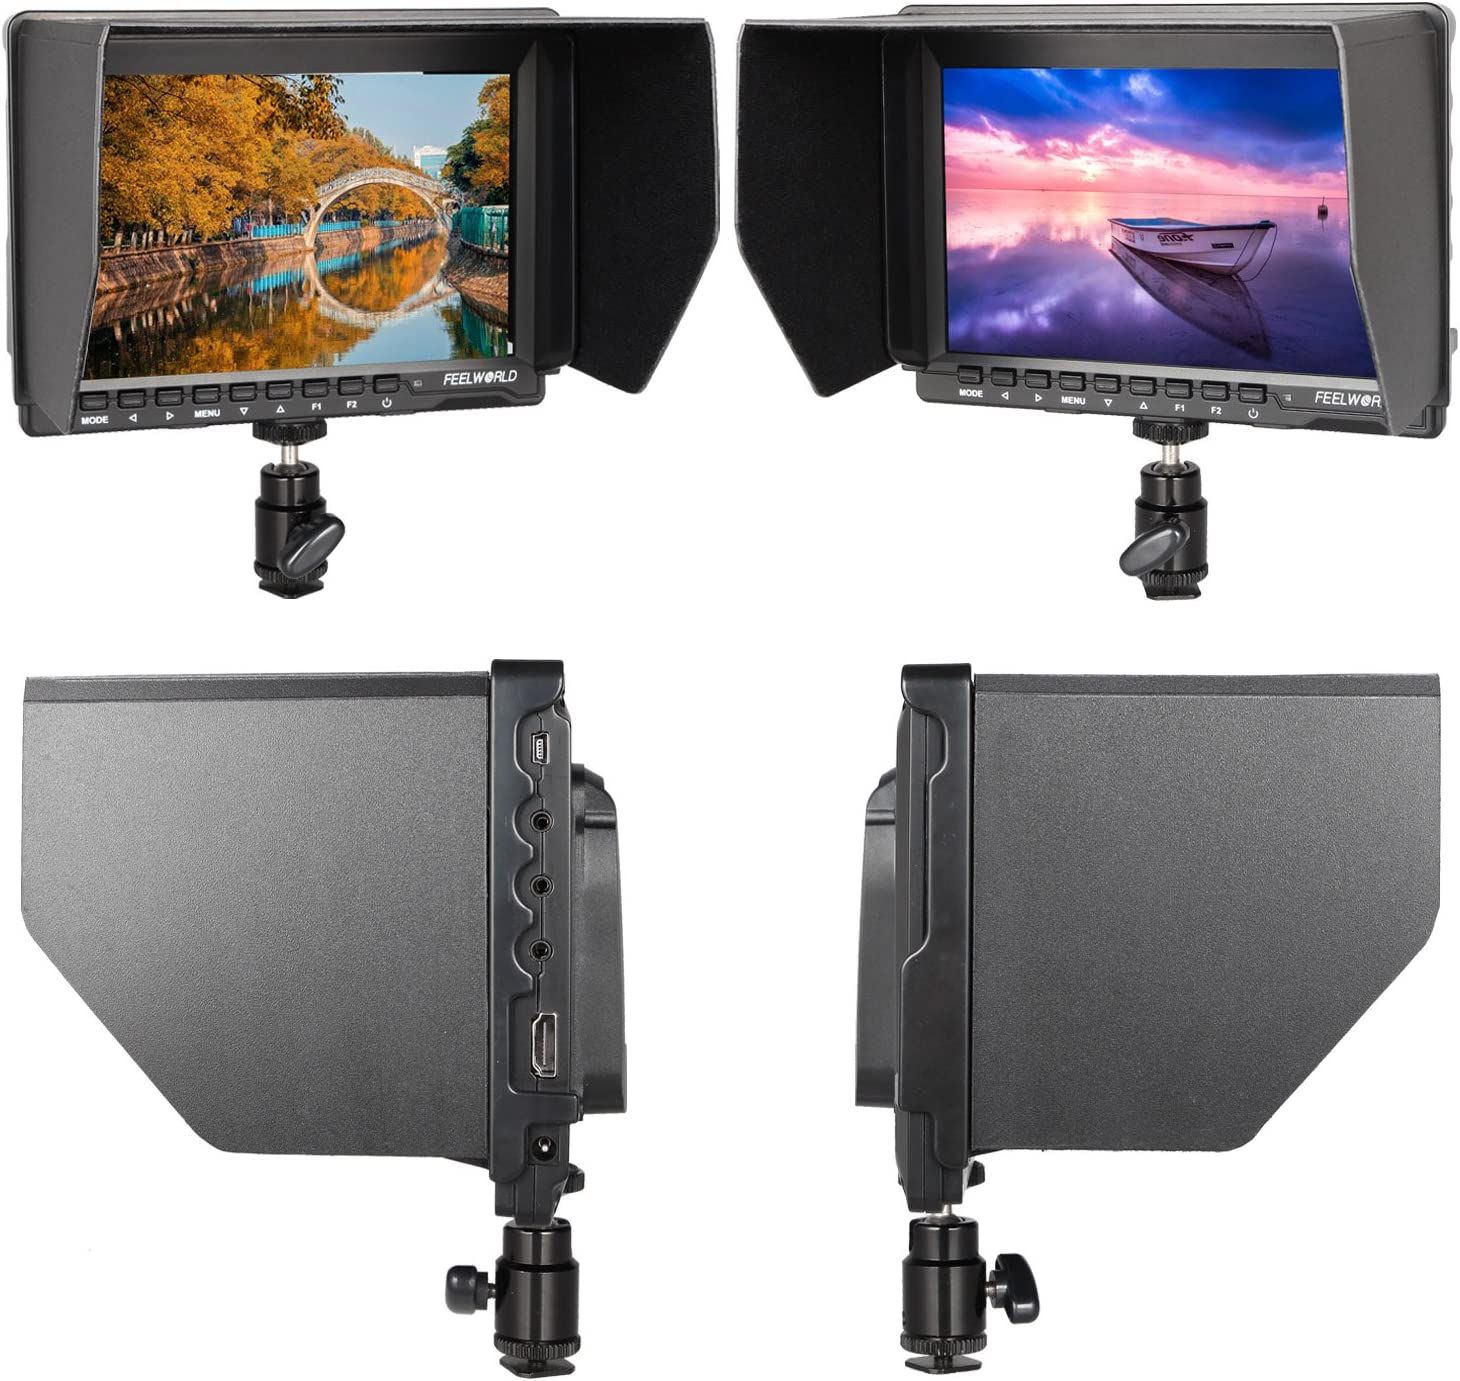 FEELWORLD FW 759 7 Inch HD 1280x800 IPS On Camera Field Monitors 16:10 or 4:3 Adjustable Ratio 800:1 Contrast Camera HDMI Monitor for Cannon,Sony,FPV Monitors with ANDYCINE Cleaning Sheet